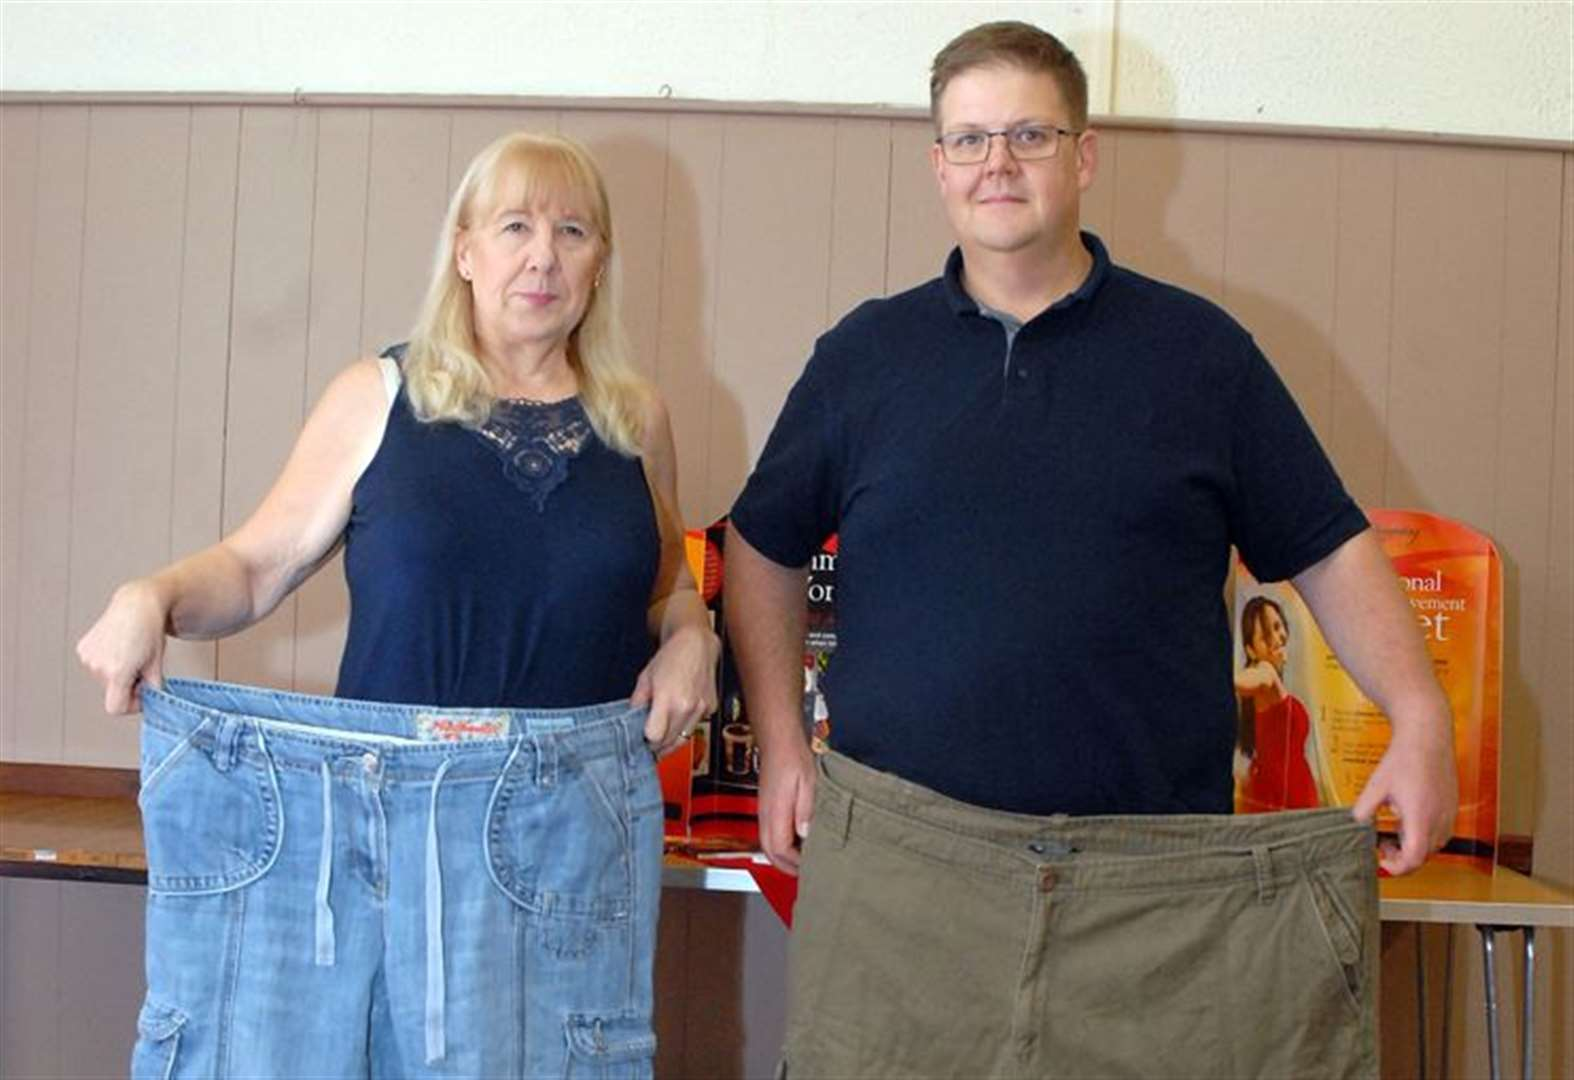 Weight loss couple turn slimming classes into 'date night'